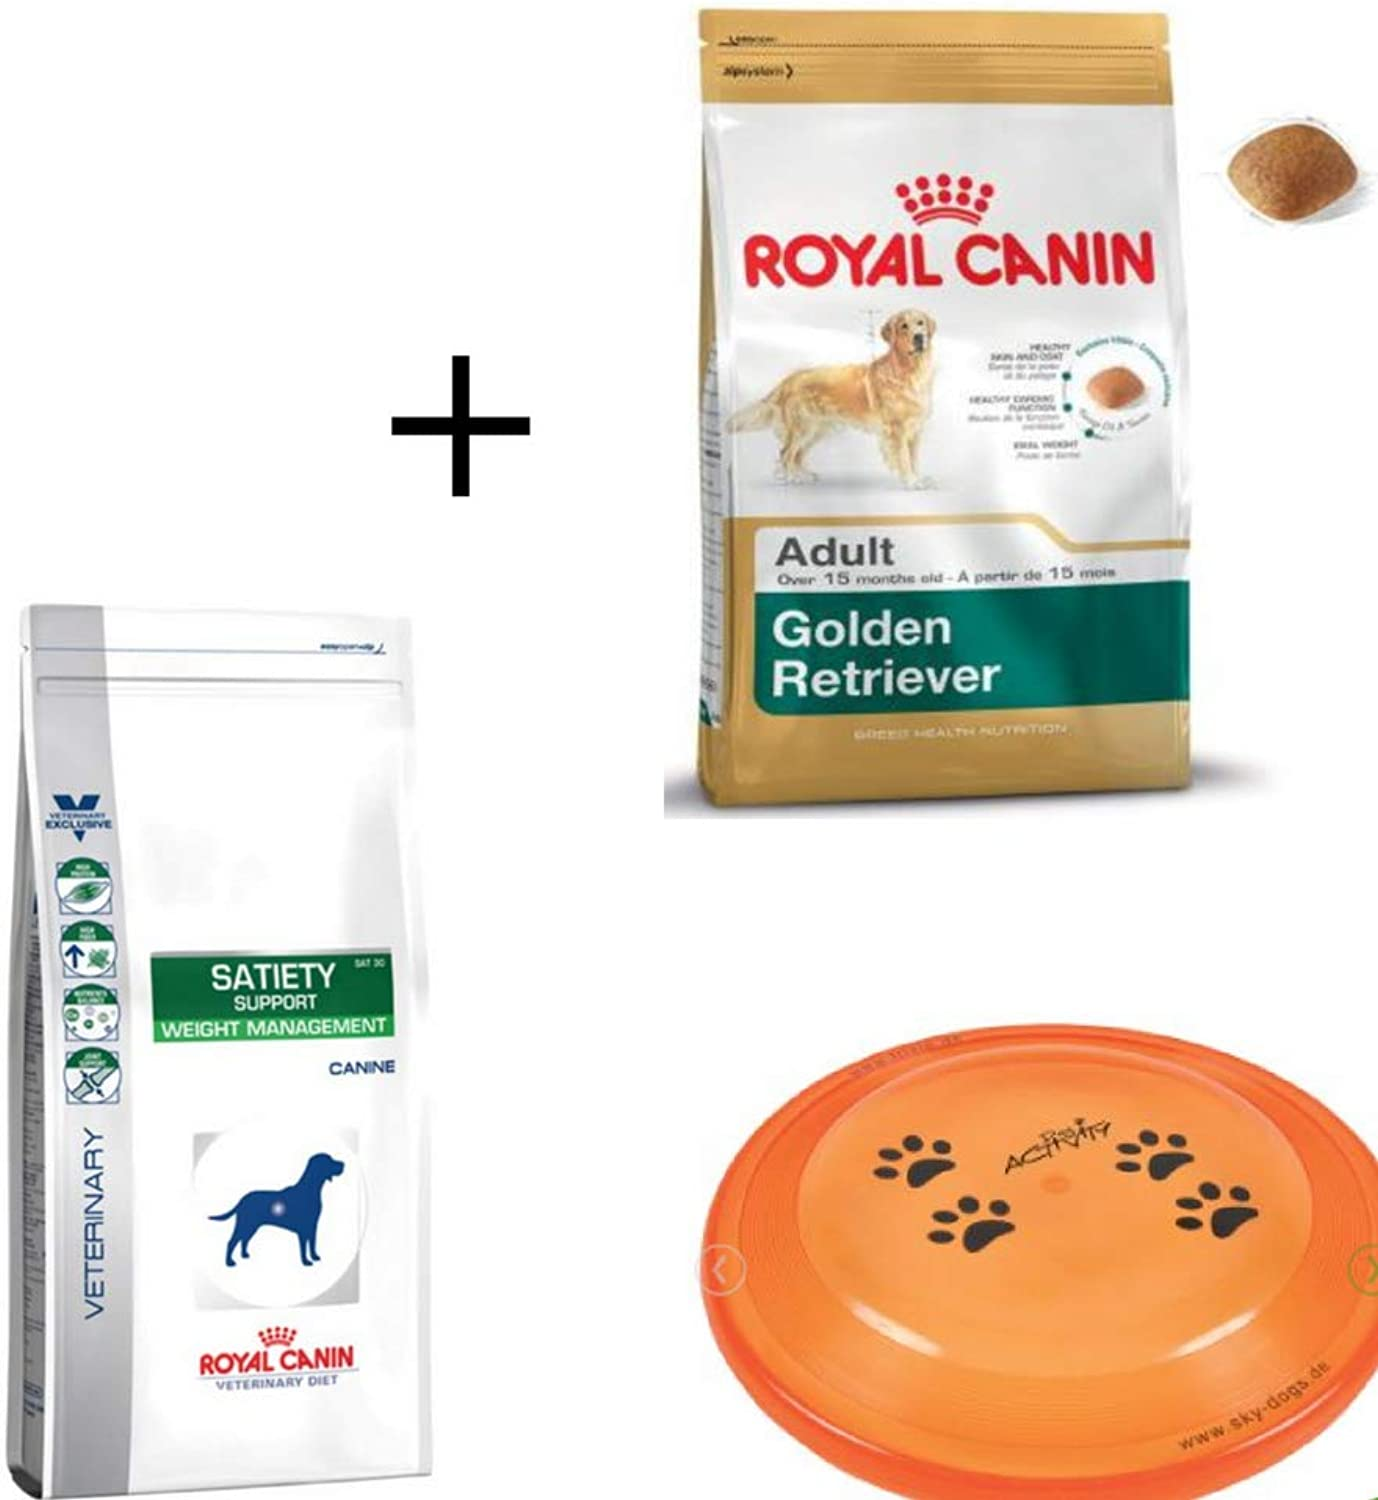 Royal Canin Diet Dry Dog Food Bundle  Veterinary Satiety Support 12kg golden Retriever Adult 12kg bundled 23cm Trixie Dog Activity Disc  Active, Healthy, Life style your Doggy